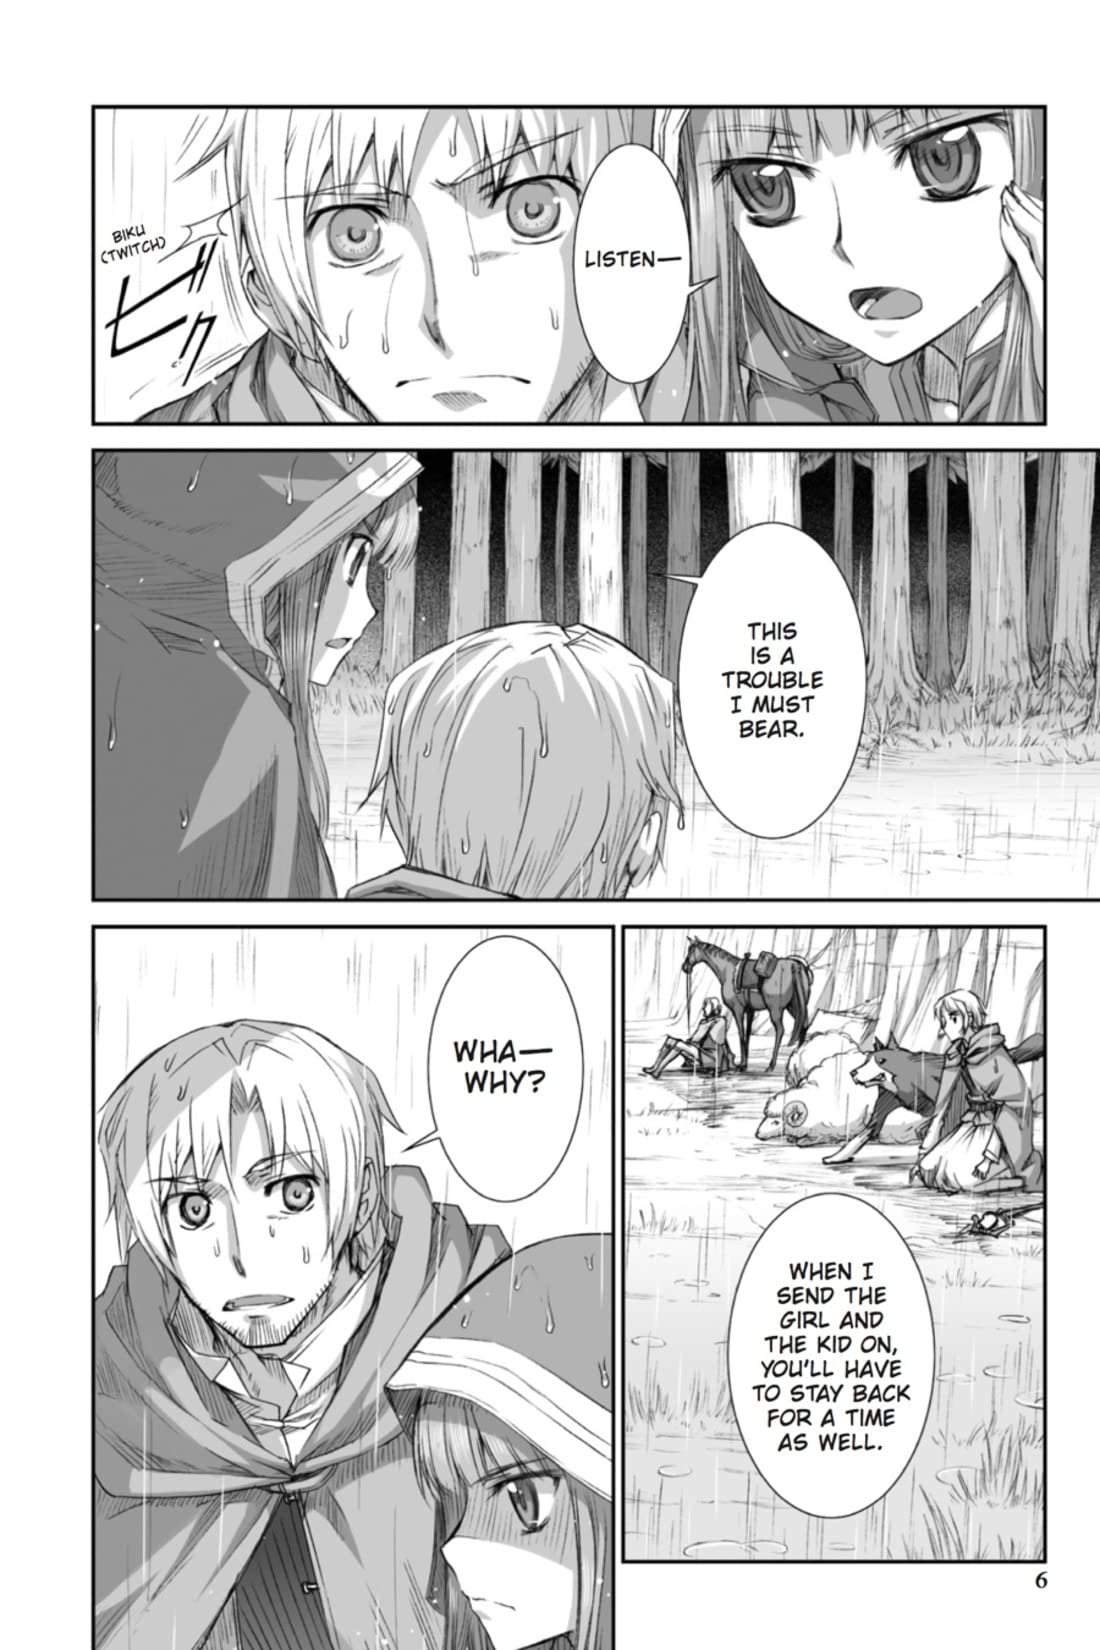 Spice and Wolf Vol. 6